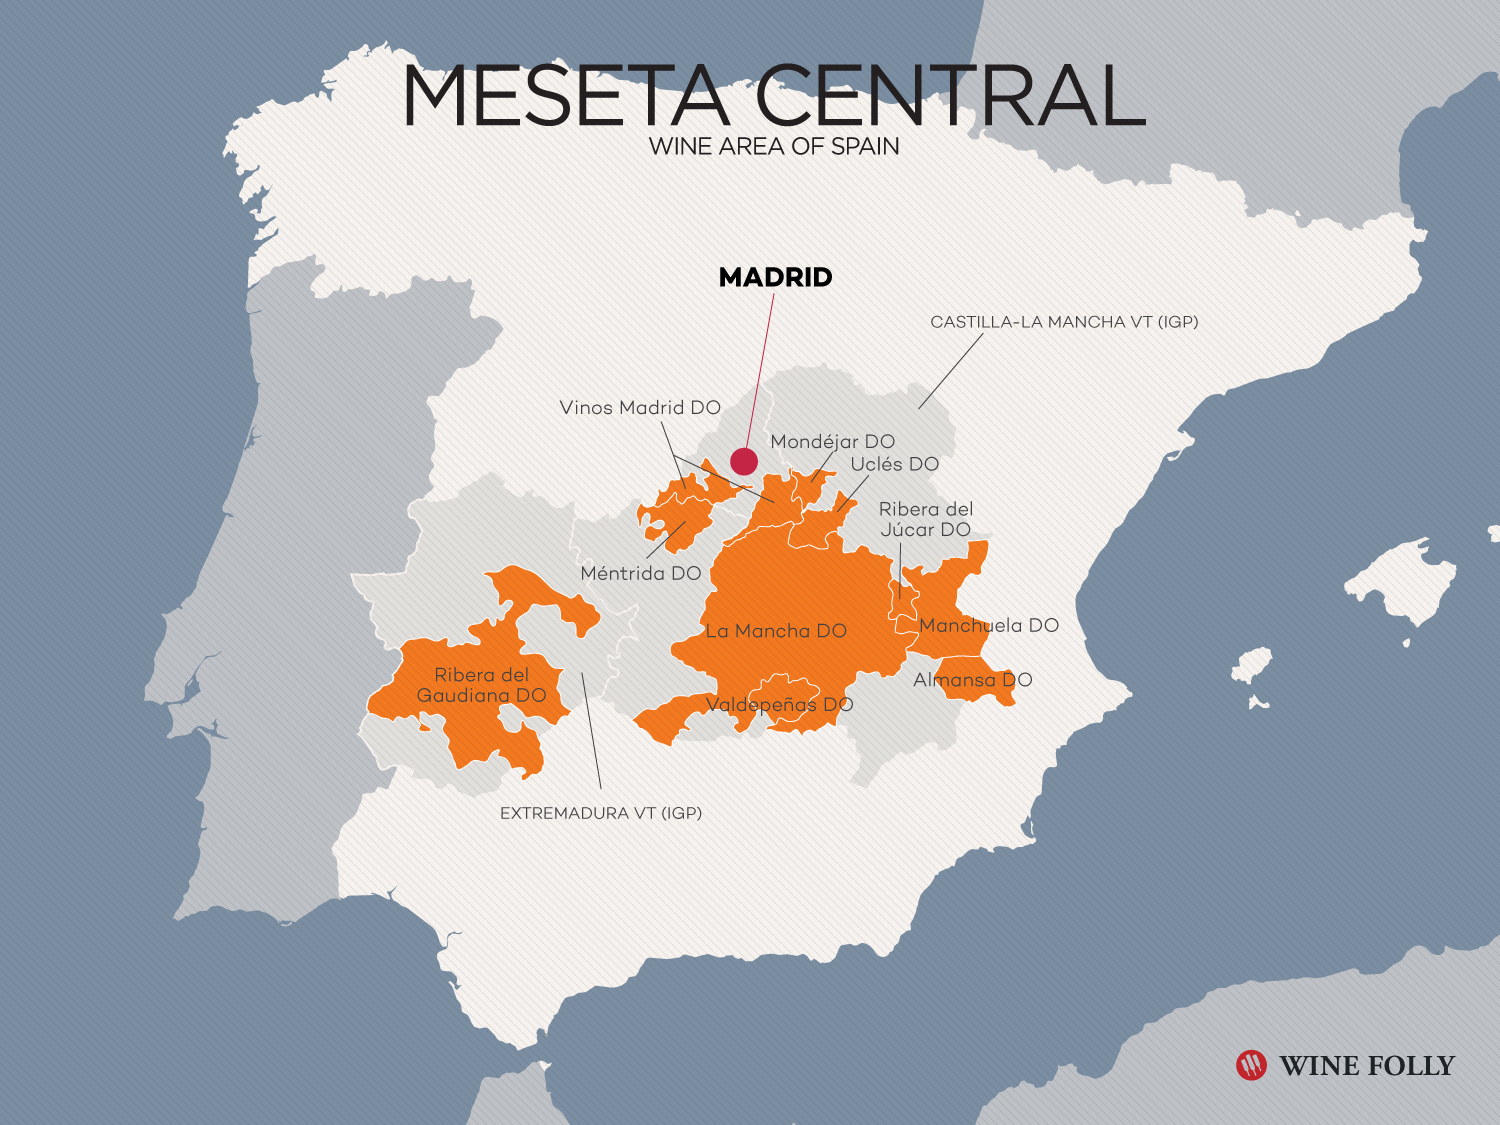 Spain-Mancha-Meseta-Central-Wine-Map.jpg